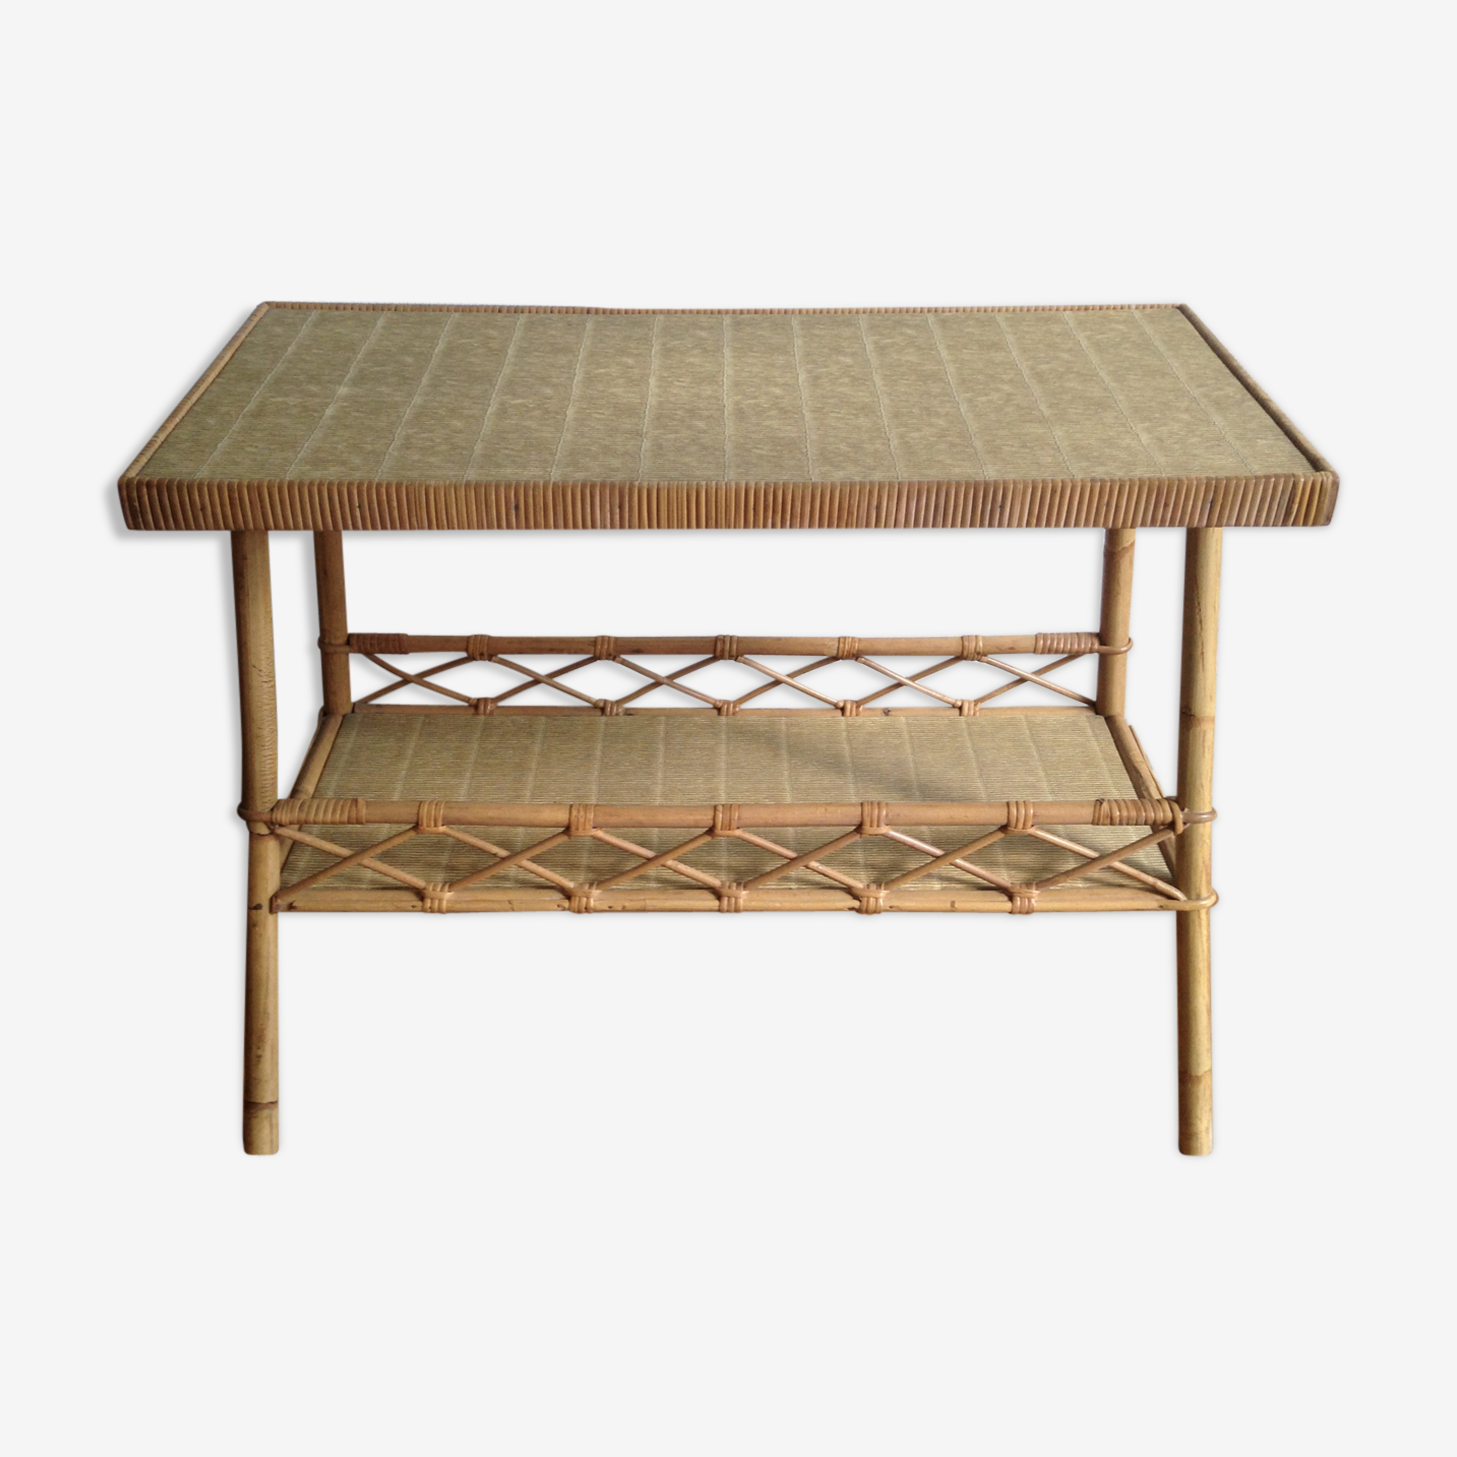 Trapezoidal rattan side table